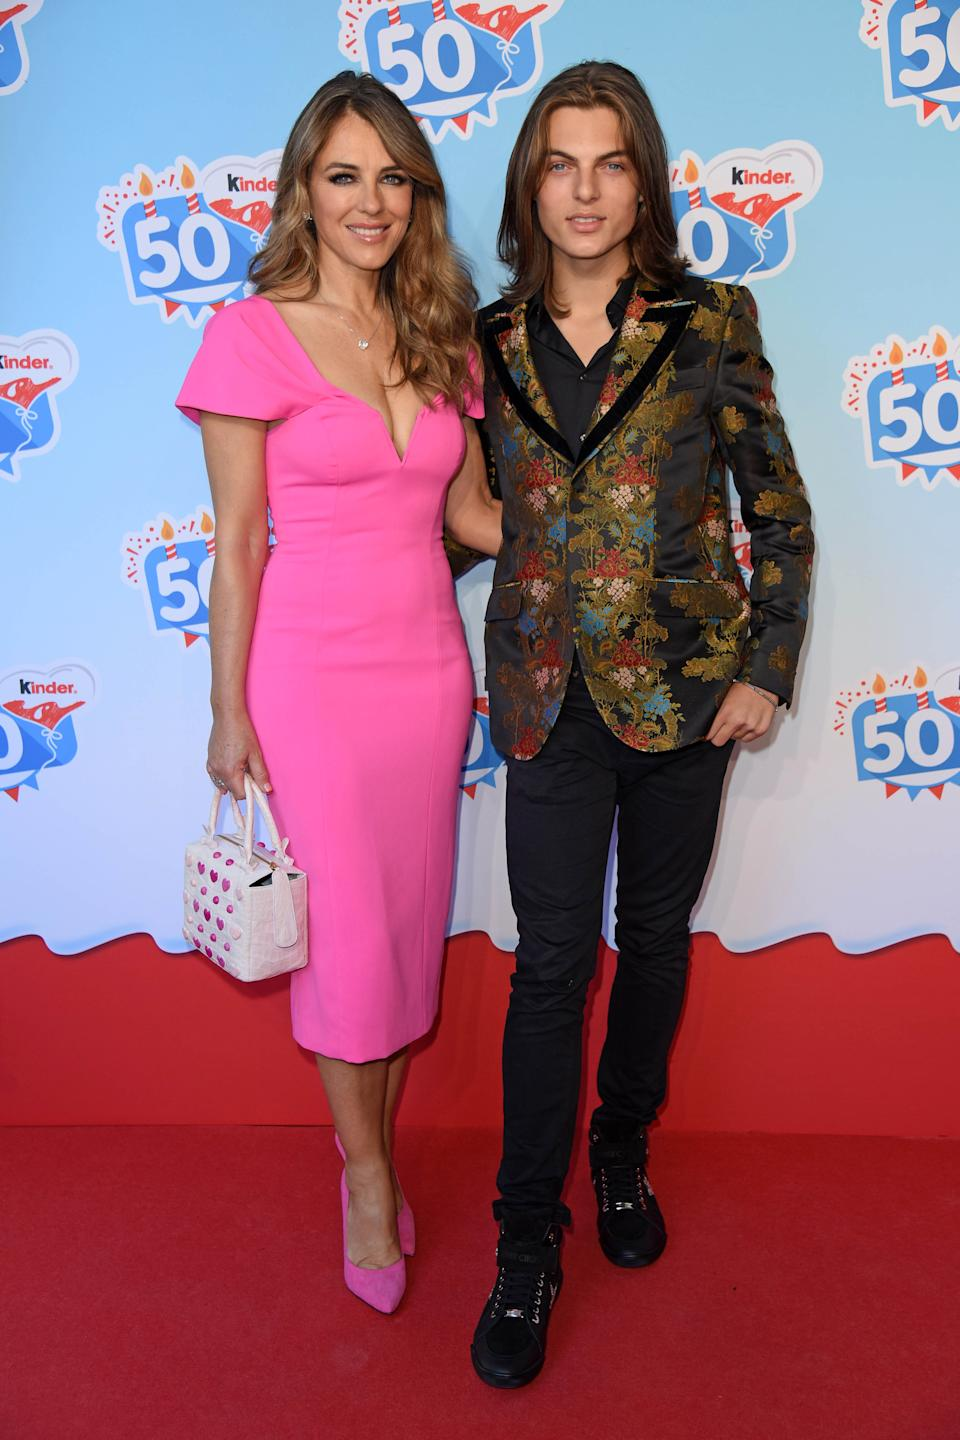 UK actress Elizabeth Liz Hurley and her son Damian Hurley during the 50th anniversary celebration of the brand Kinder